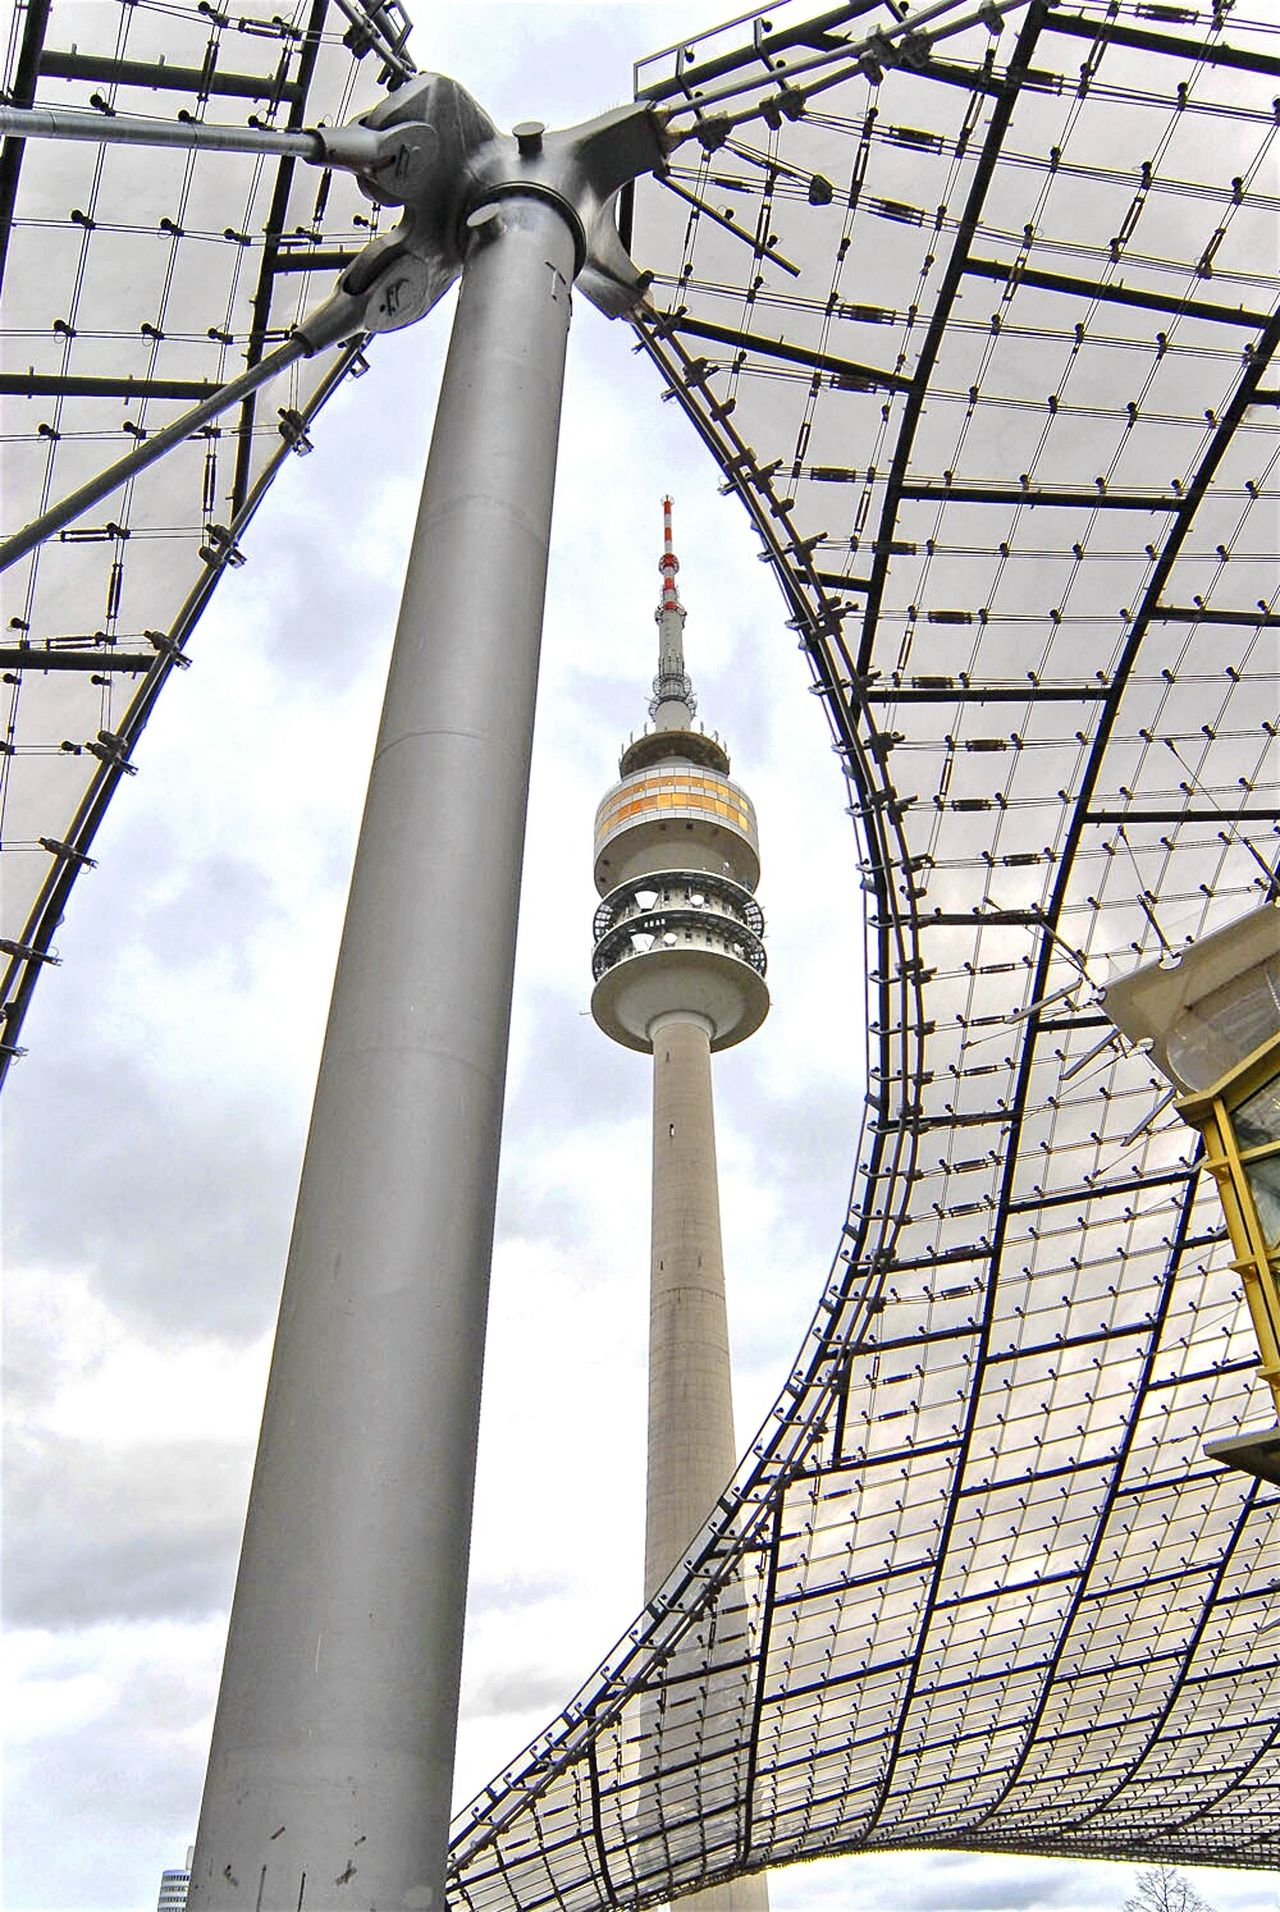 ...framing Olympic Stadium Berlin Olympiastadion Berlin Throwback Structure Framing Taking Photos Check This Out Berlin Photography GERMANY🇩🇪DEUTSCHERLAND@ Tower Contrast Metal Beautiful Structure Architecture The Architect - 2016 EyeEm Awards